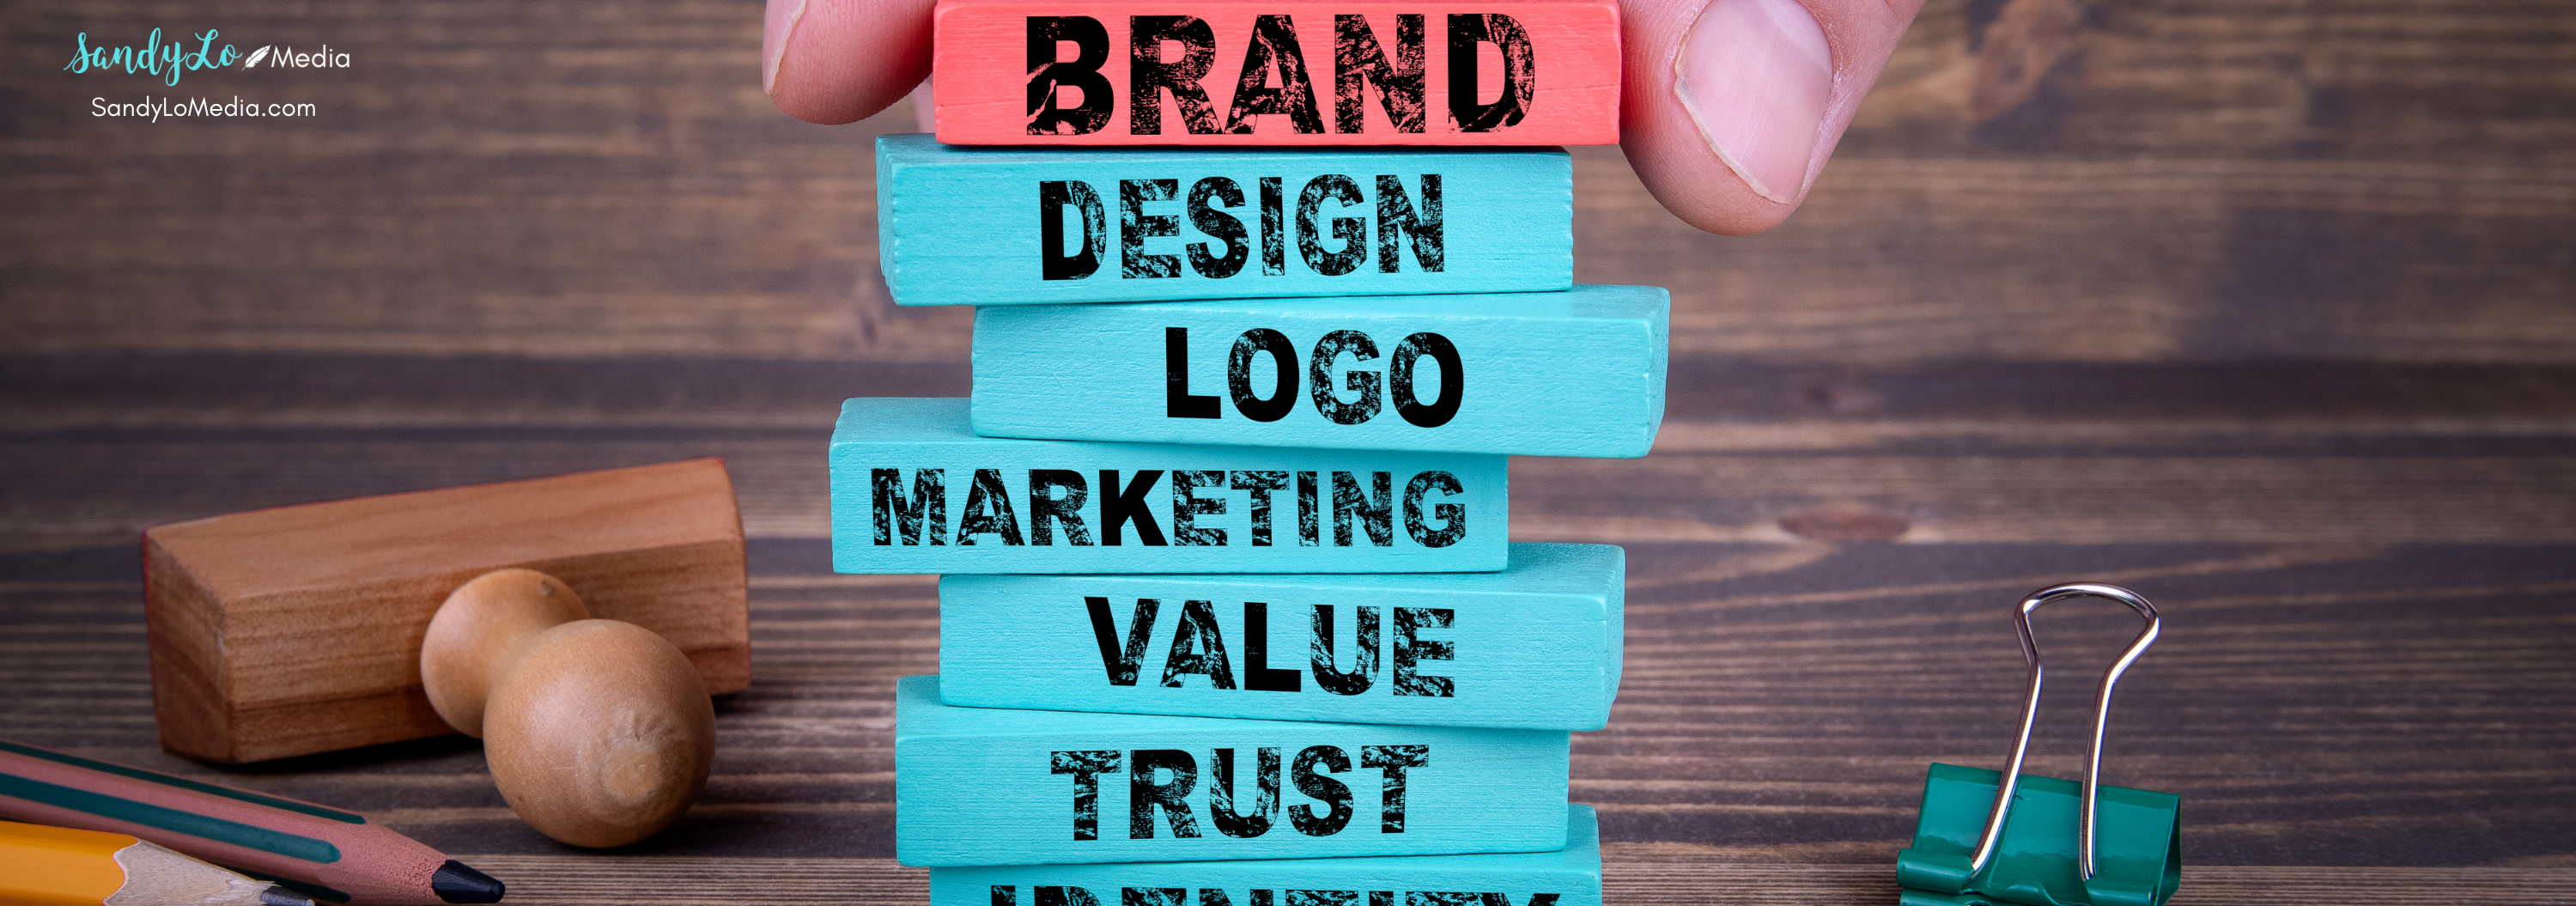 The Don'ts of Branding Your Business